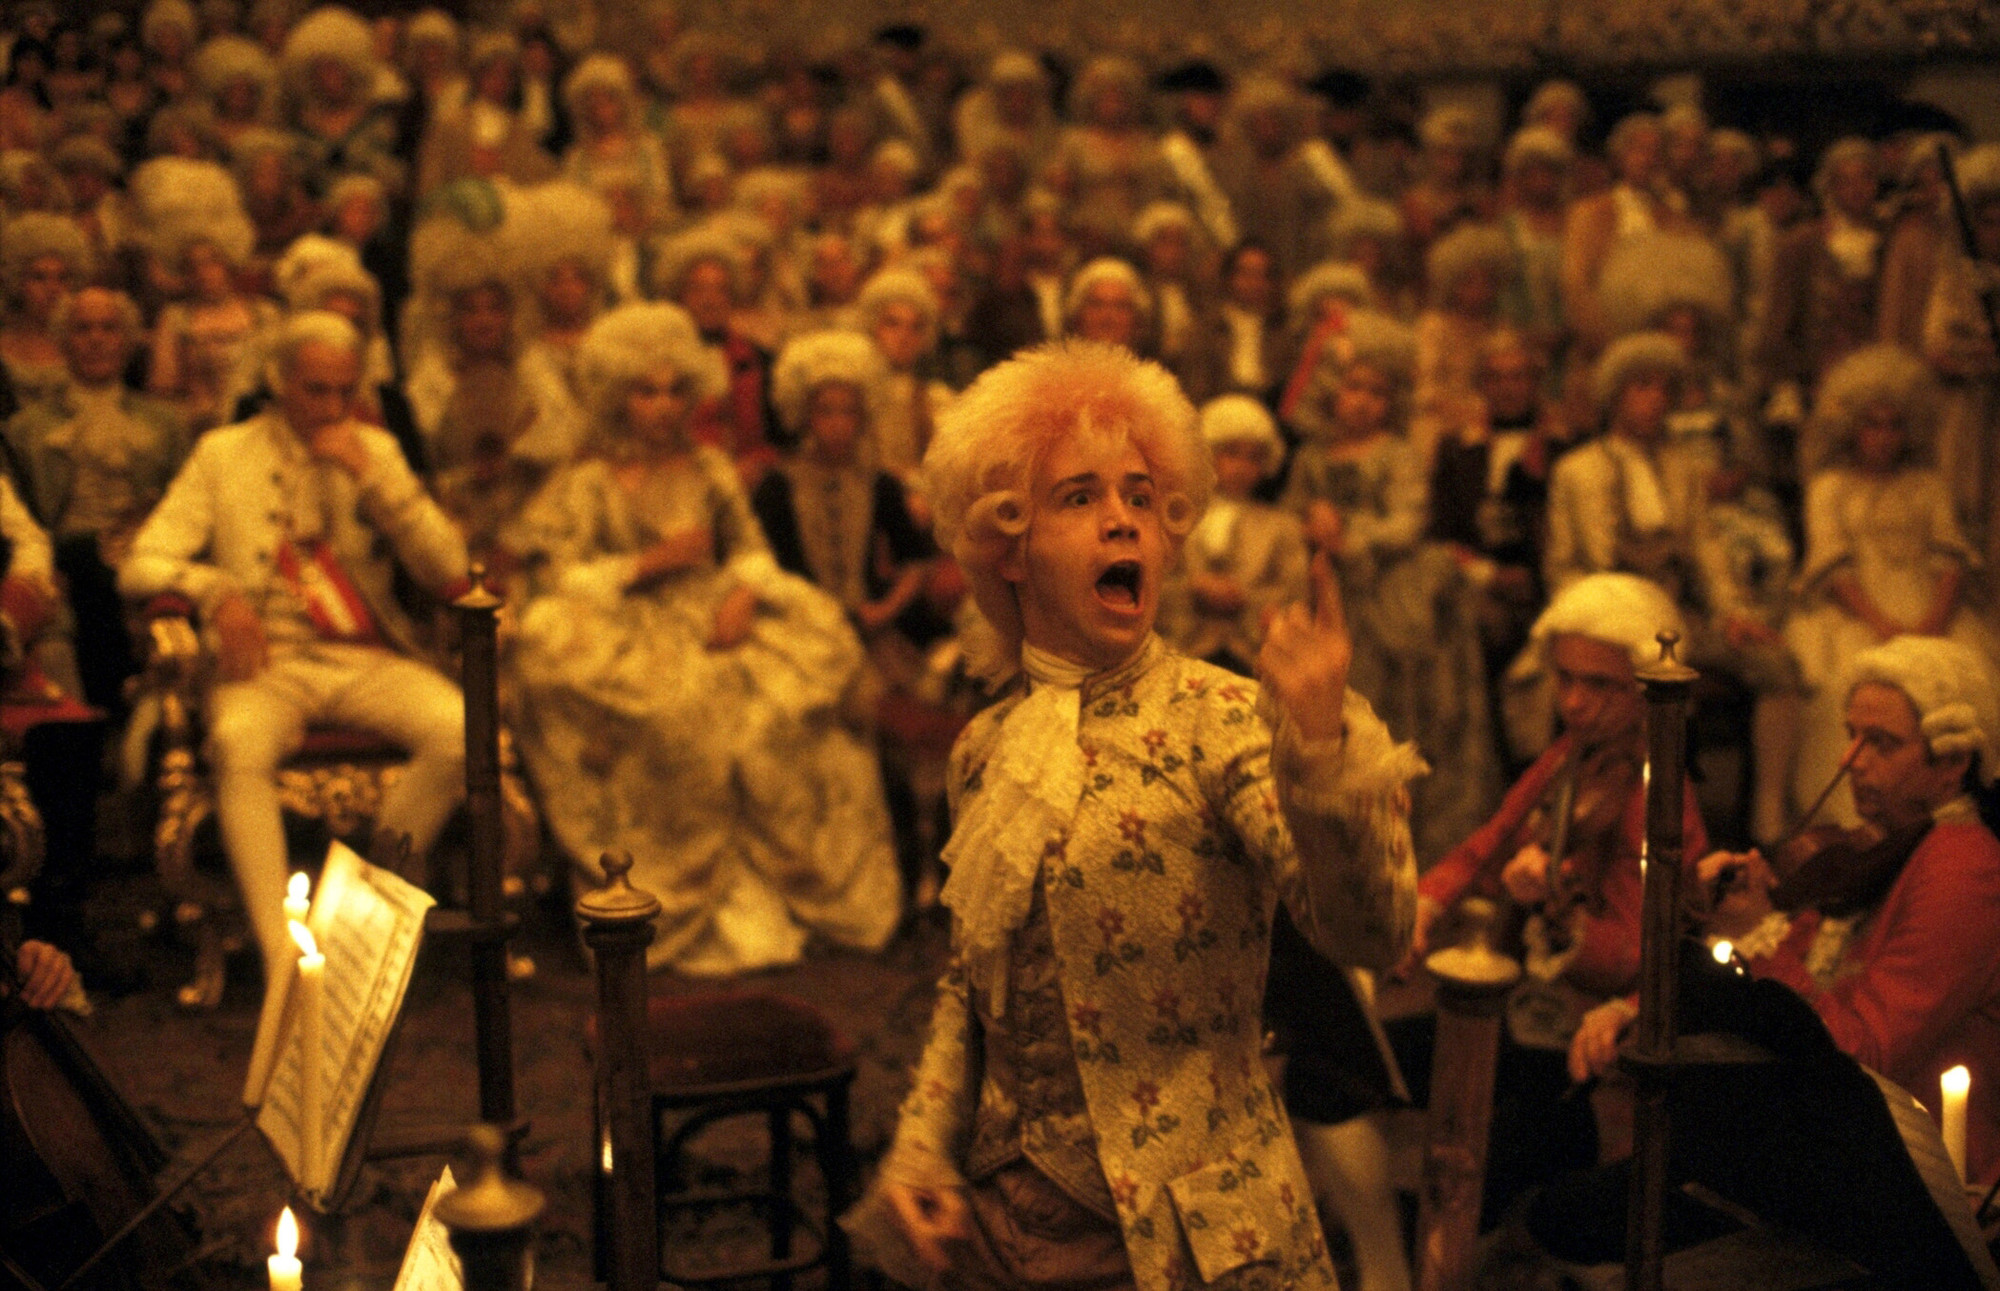 Amadeus. 1984. USA. Directed by Milos Forman. Courtesy of Warner Bros./Photofest. © Warner Bros.